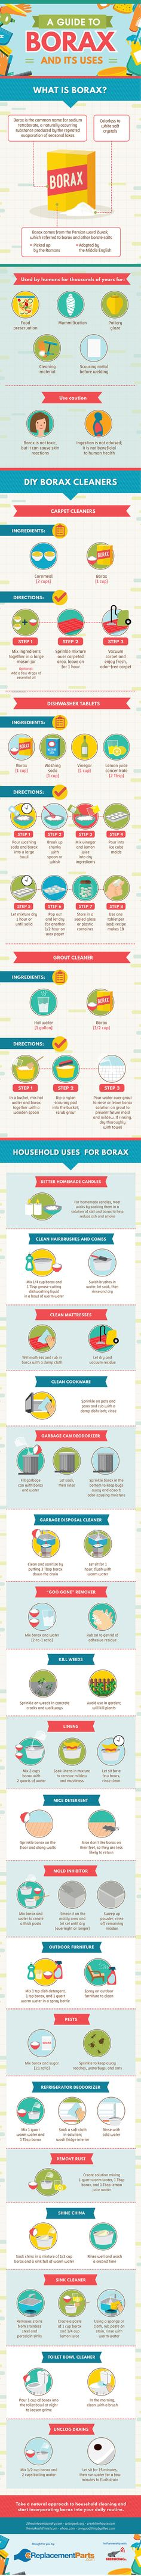 Check out our infographic below for some of the best uses of borax!